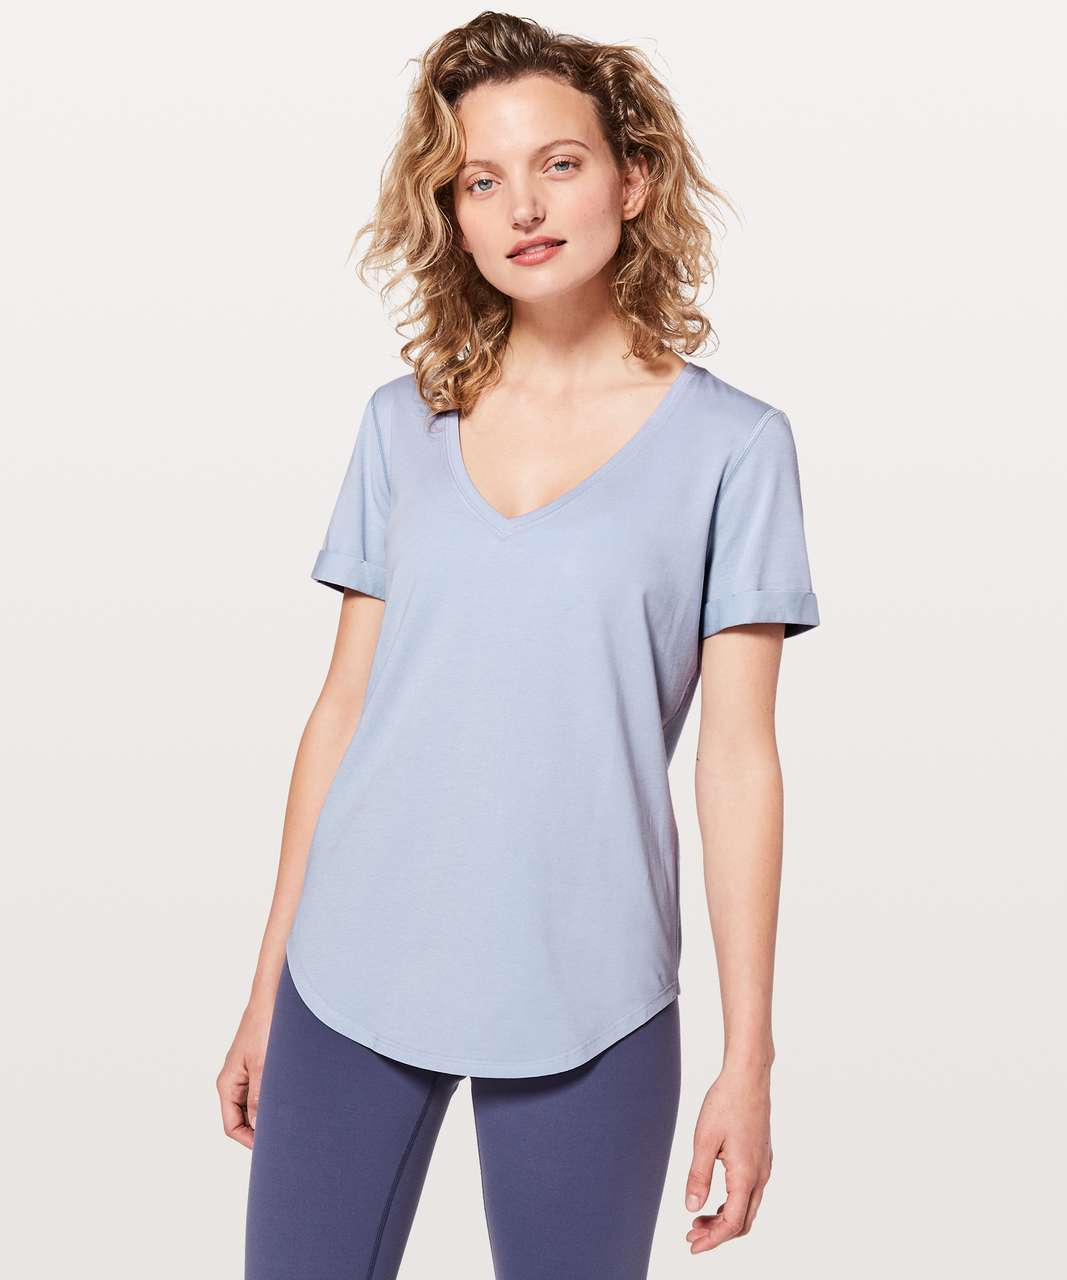 Lululemon Love Tee II - Berry Mist